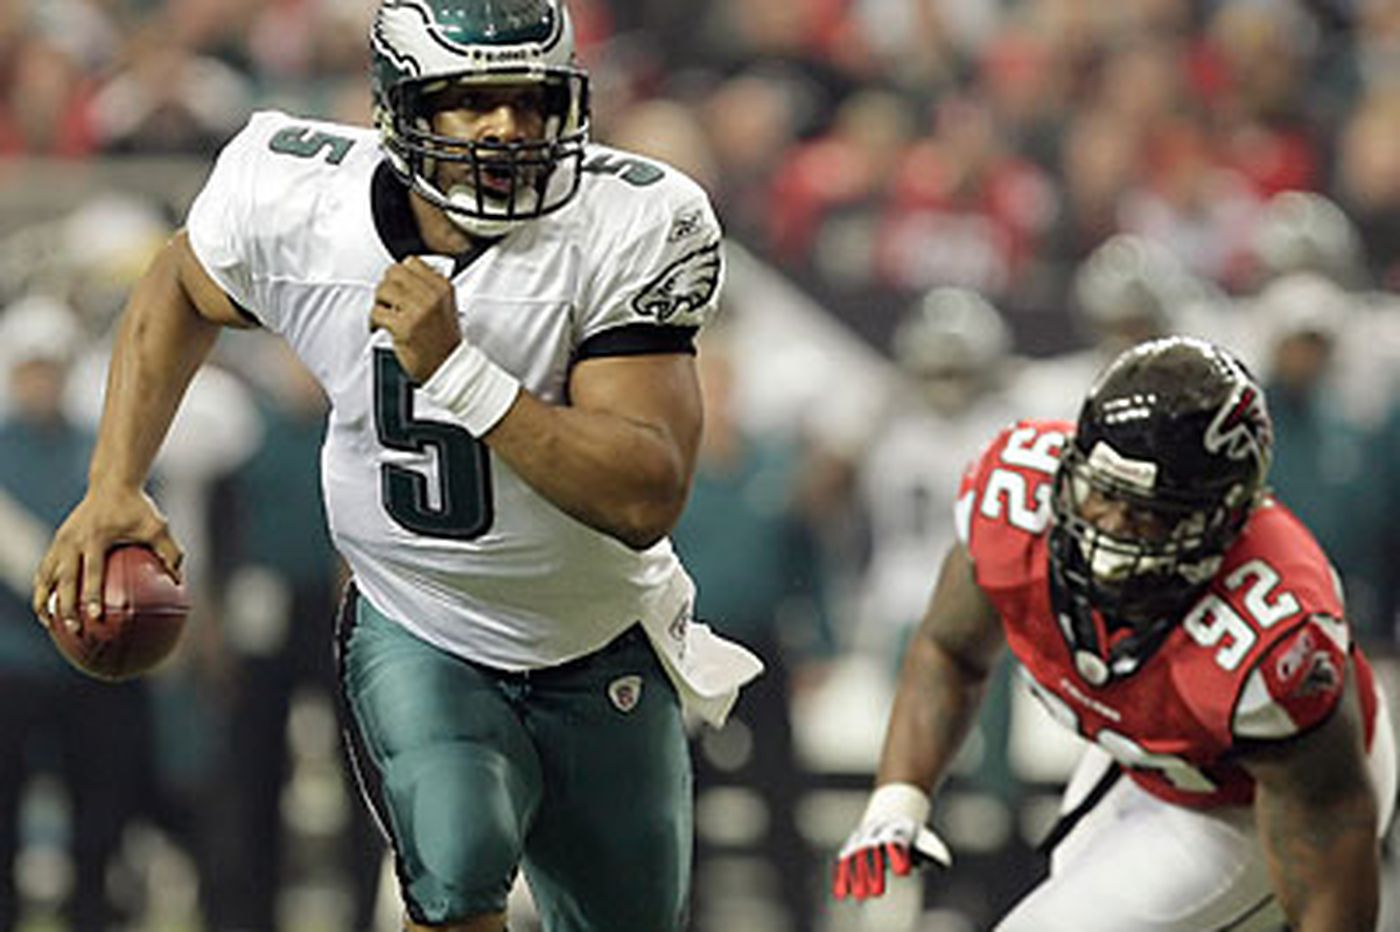 Bob Ford: McNabb in search of redemption, too